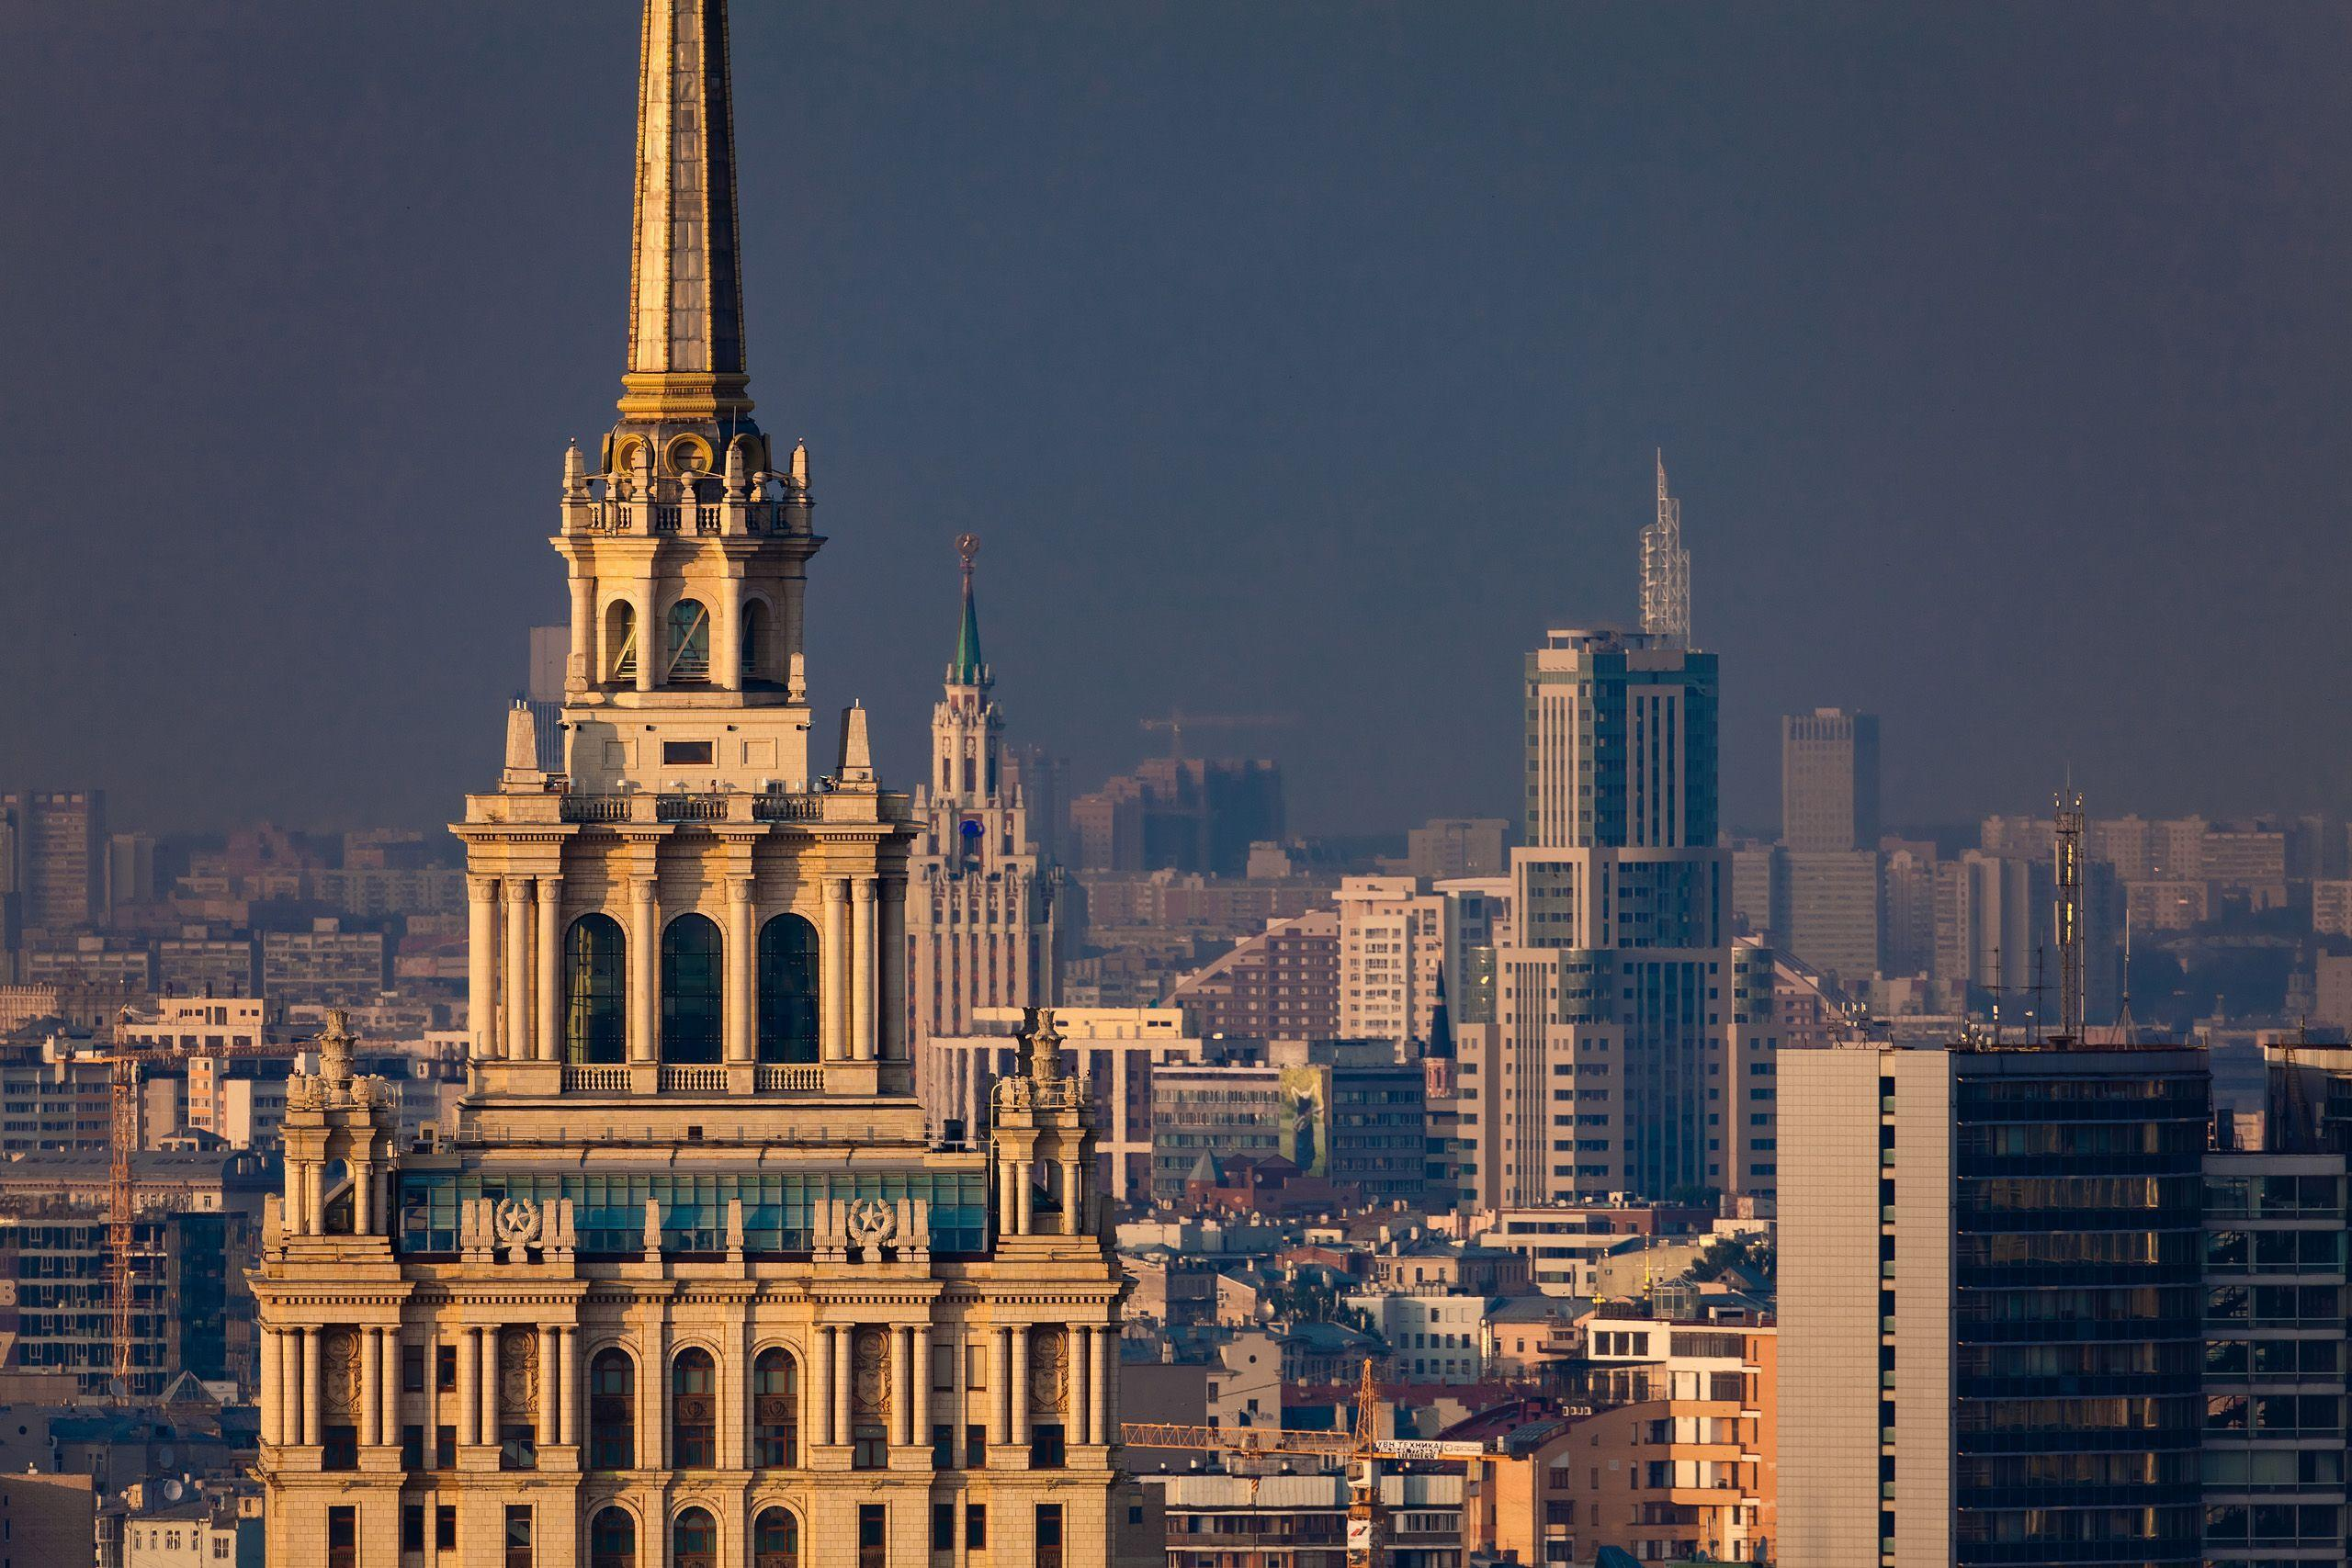 Incredible moscow wallpapers and images - wallpapers, pictures, photos